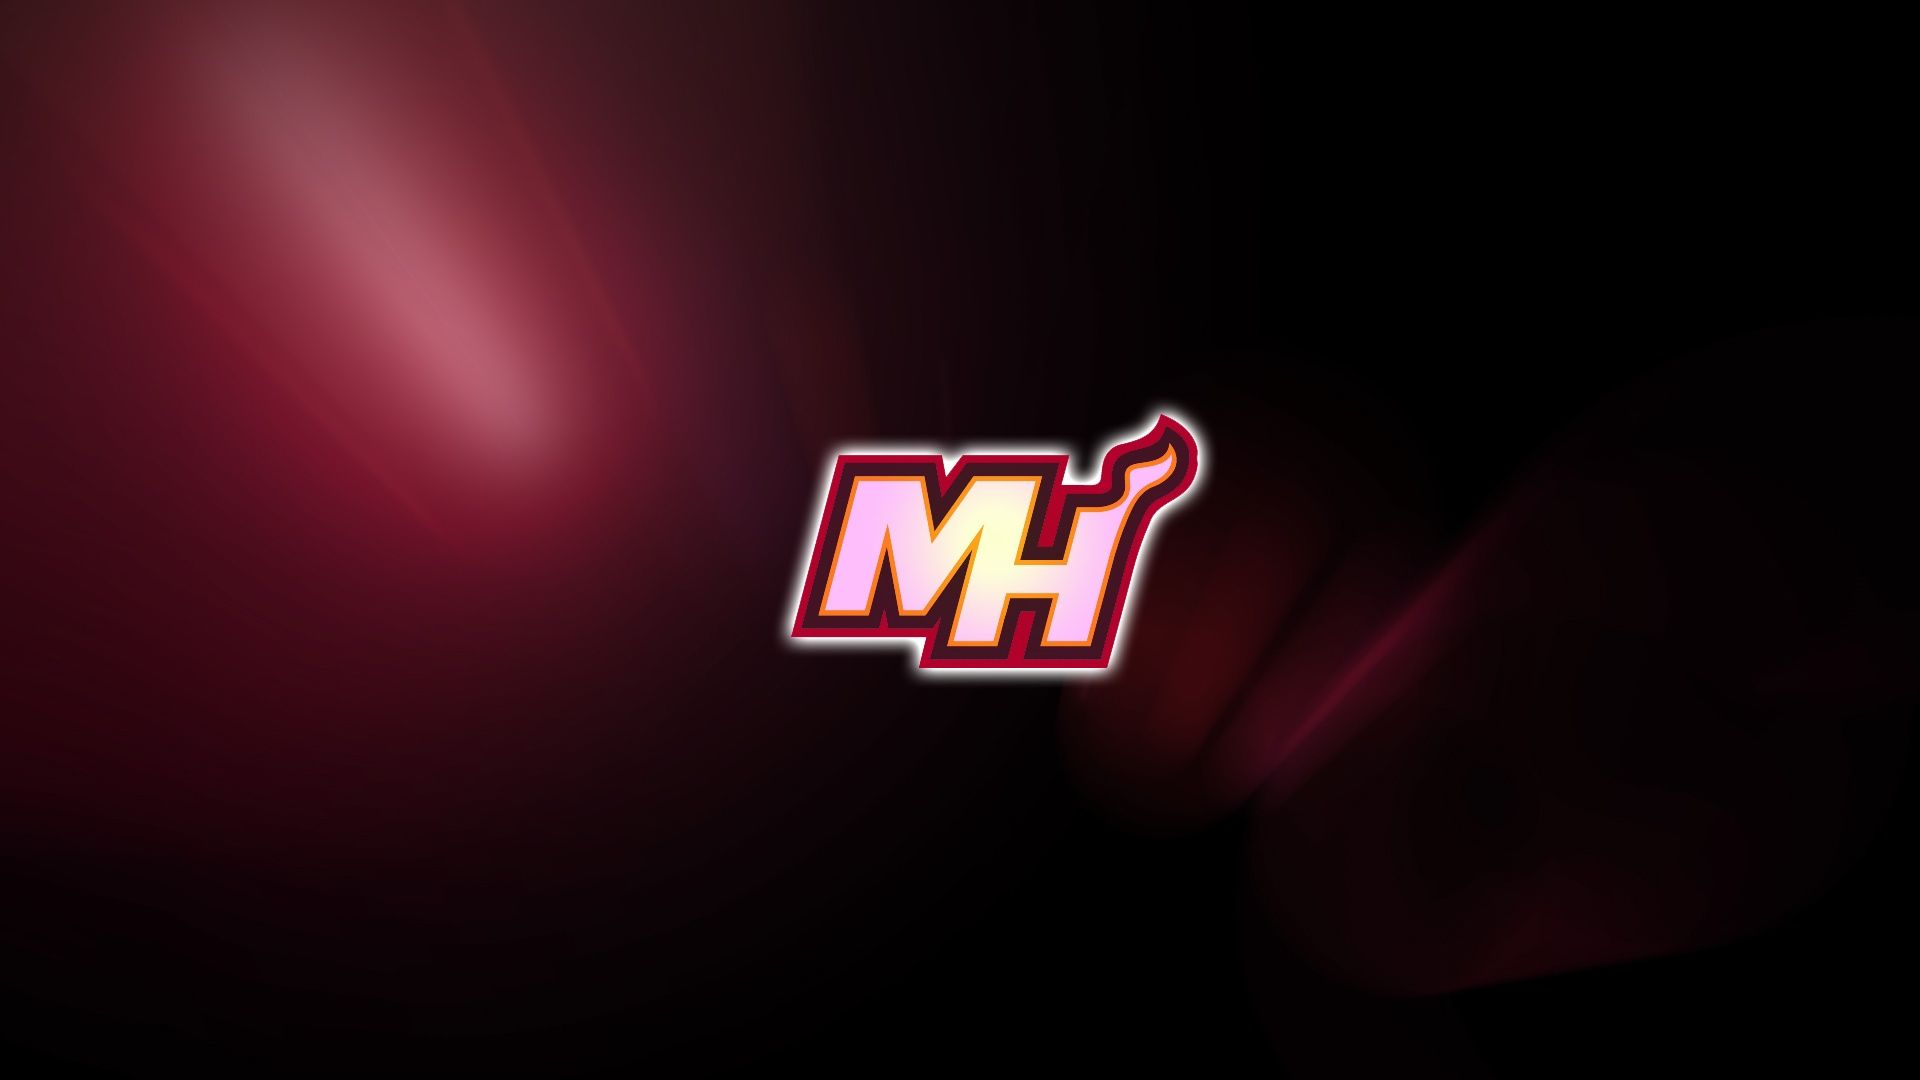 miami heat mh logo hd - http://69hdwallpapers.com/miami-